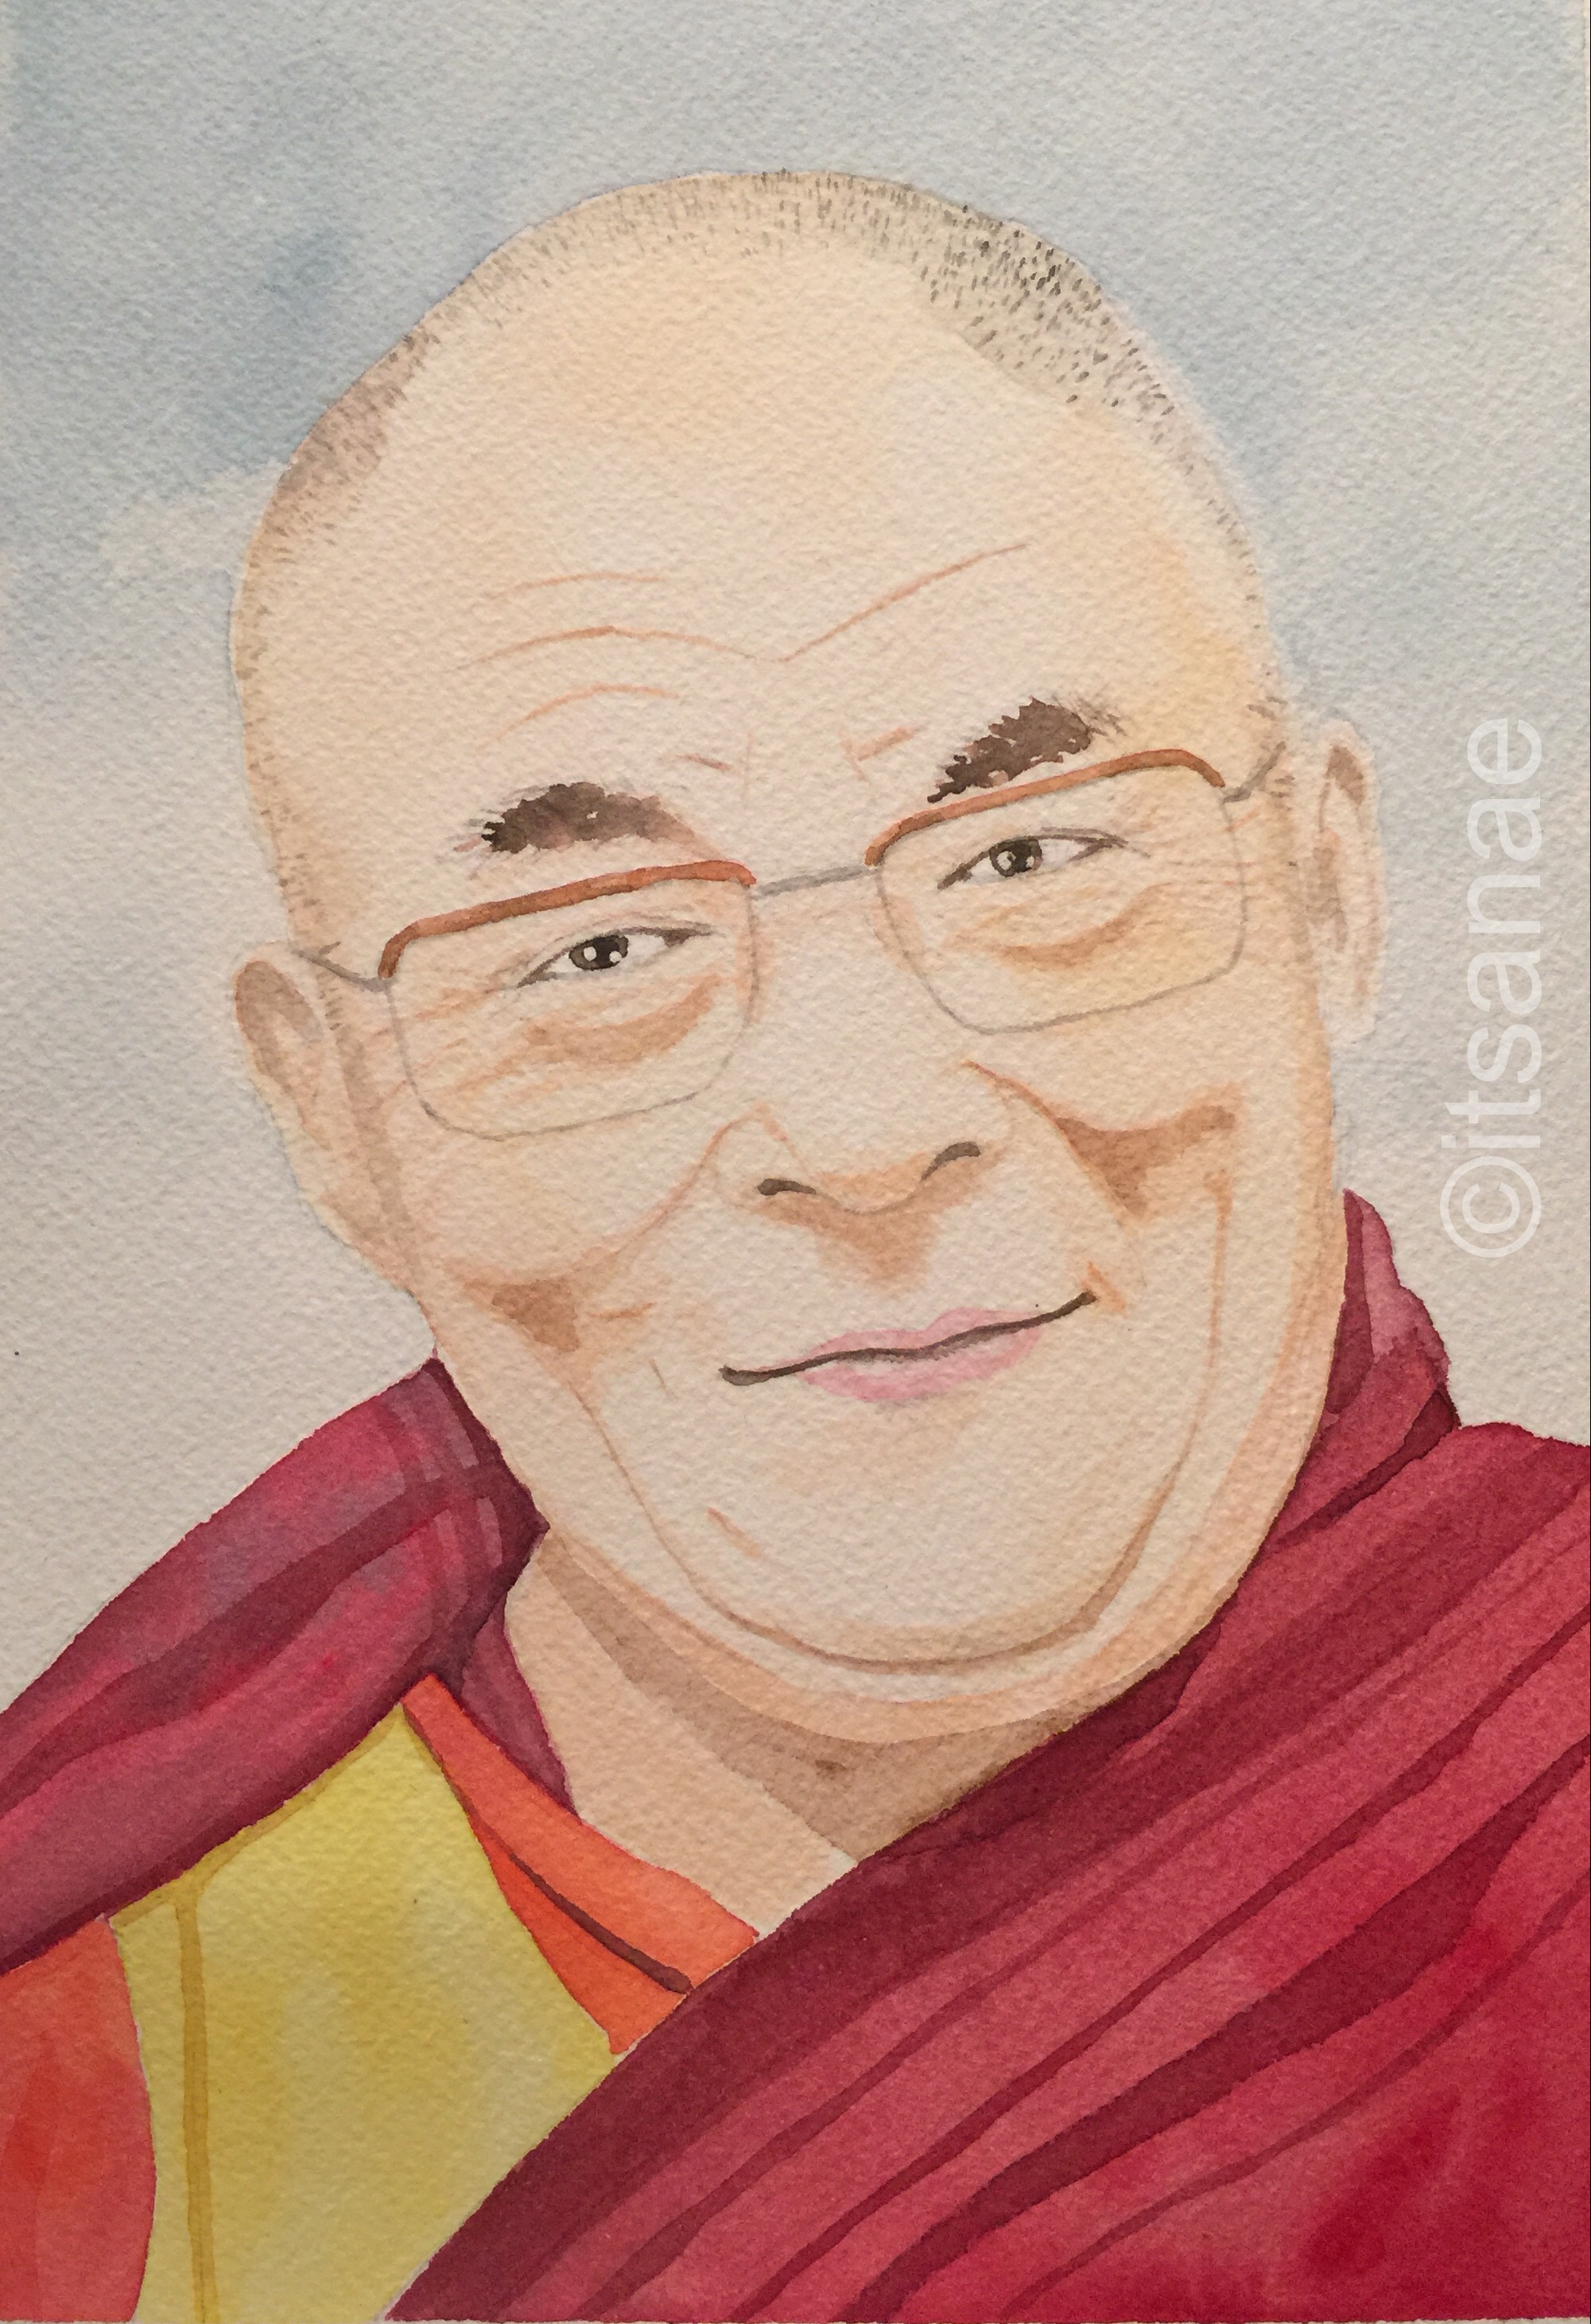 Day 526 The Dalai Lama's Birthday